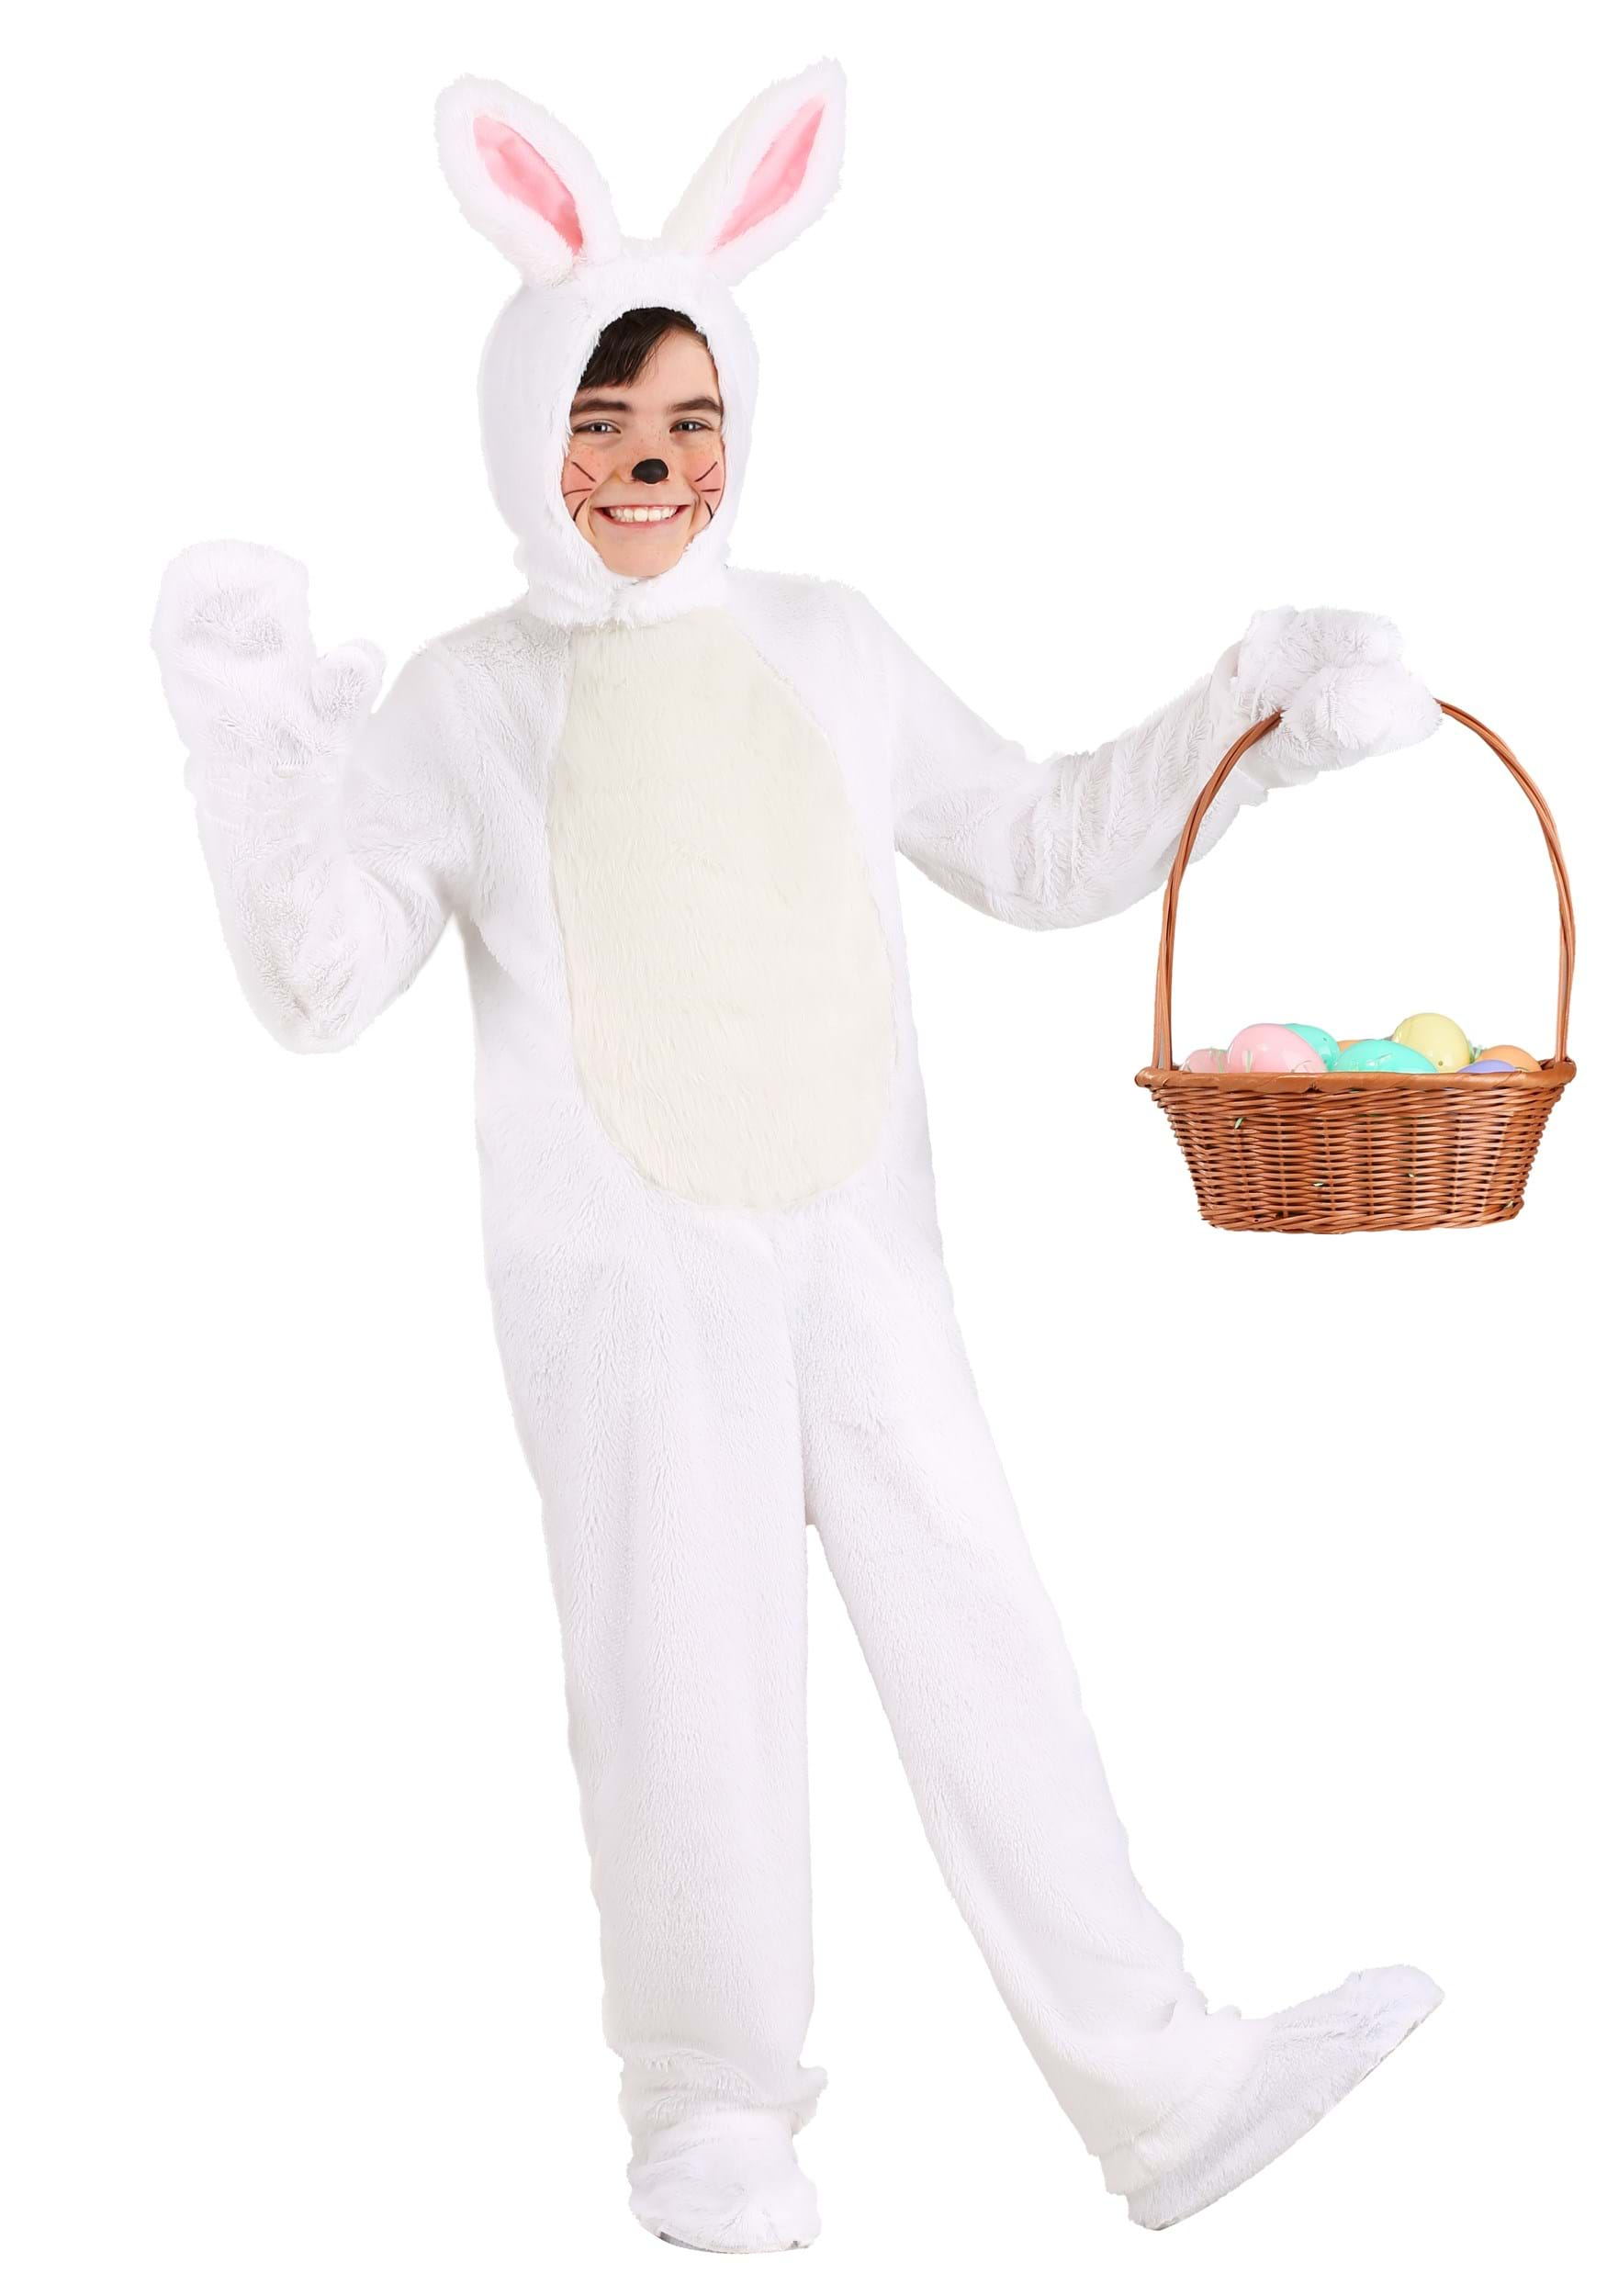 09c68cd82 Bunny Costumes   Suits For Adults   Kids - HalloweenCostumes.com